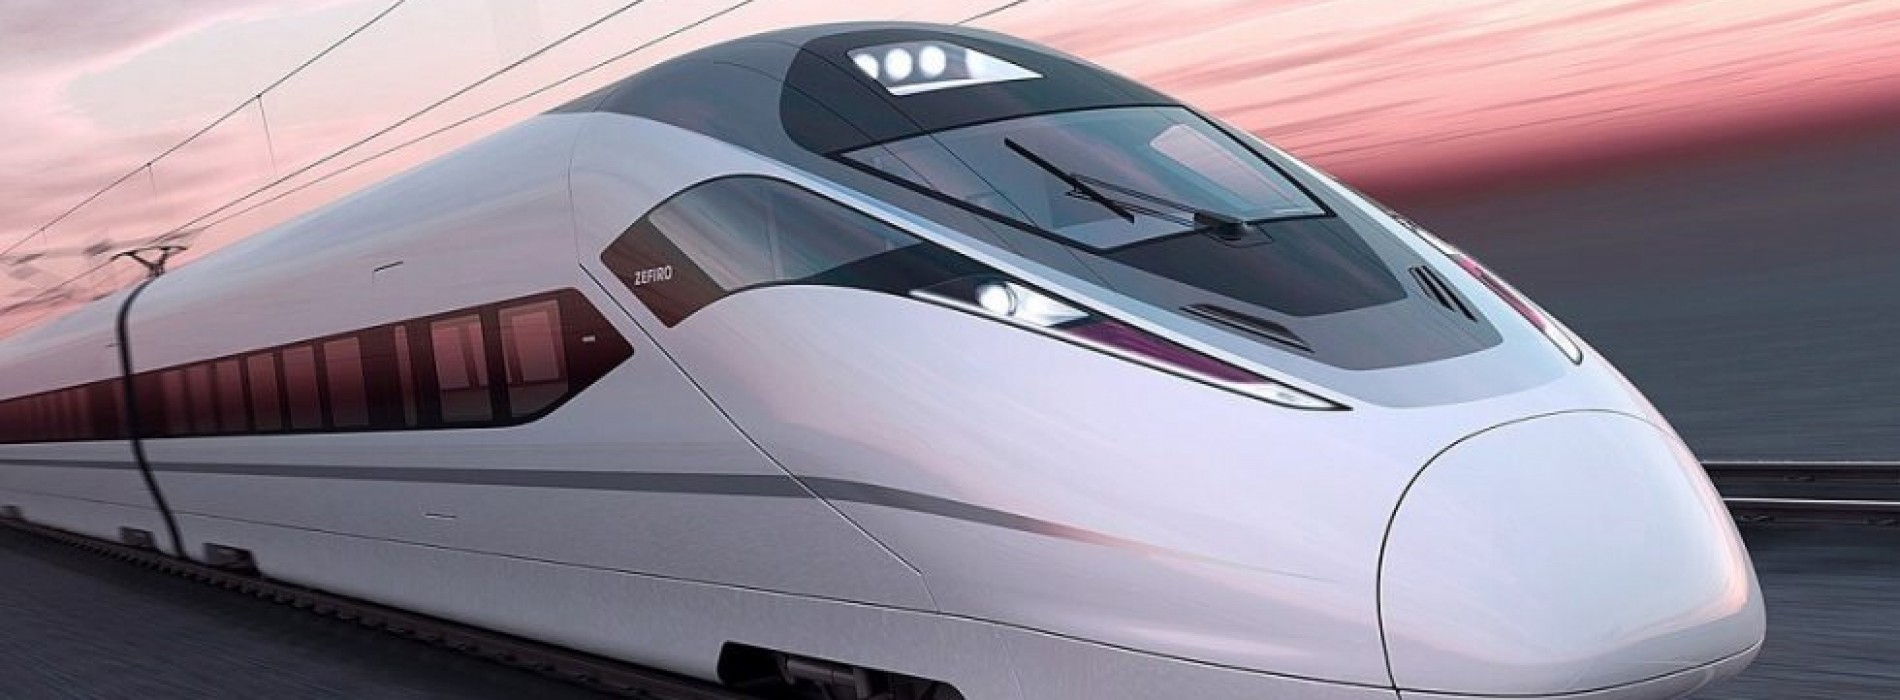 Sanjeev Sinha named Adviser for Ahmedabad-Mumbai Bullet Train Project